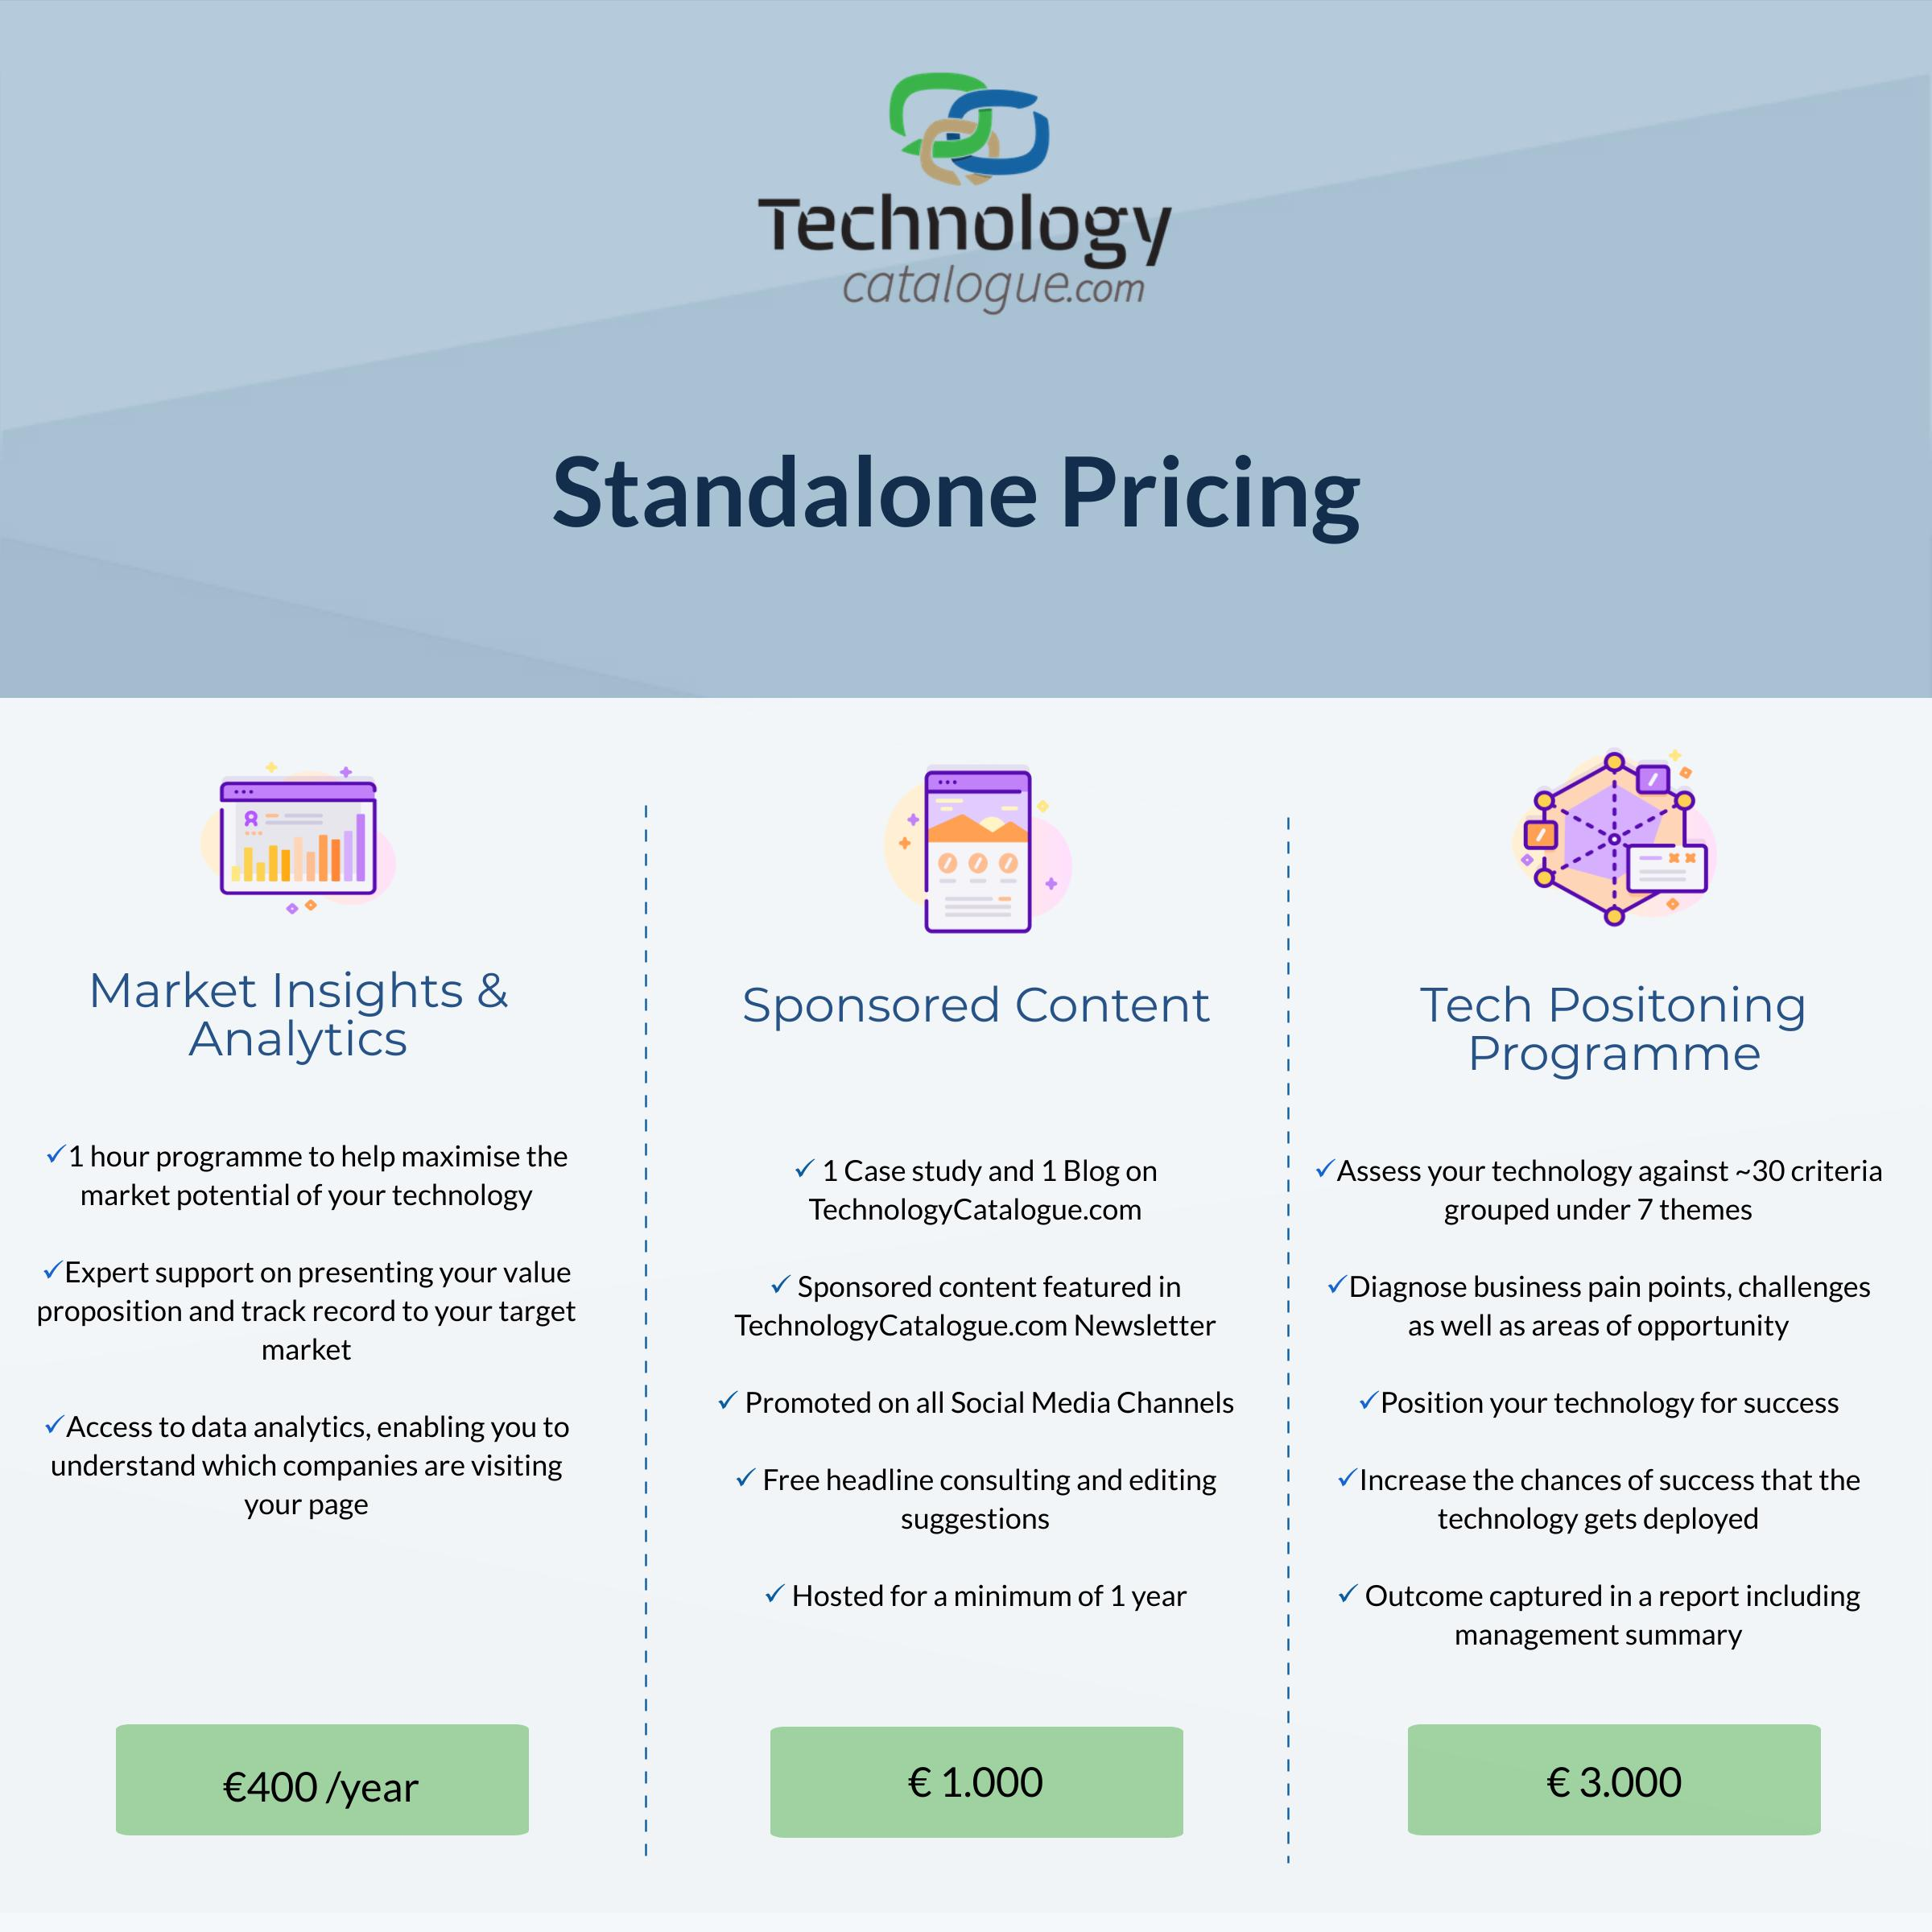 Standalone Pricing